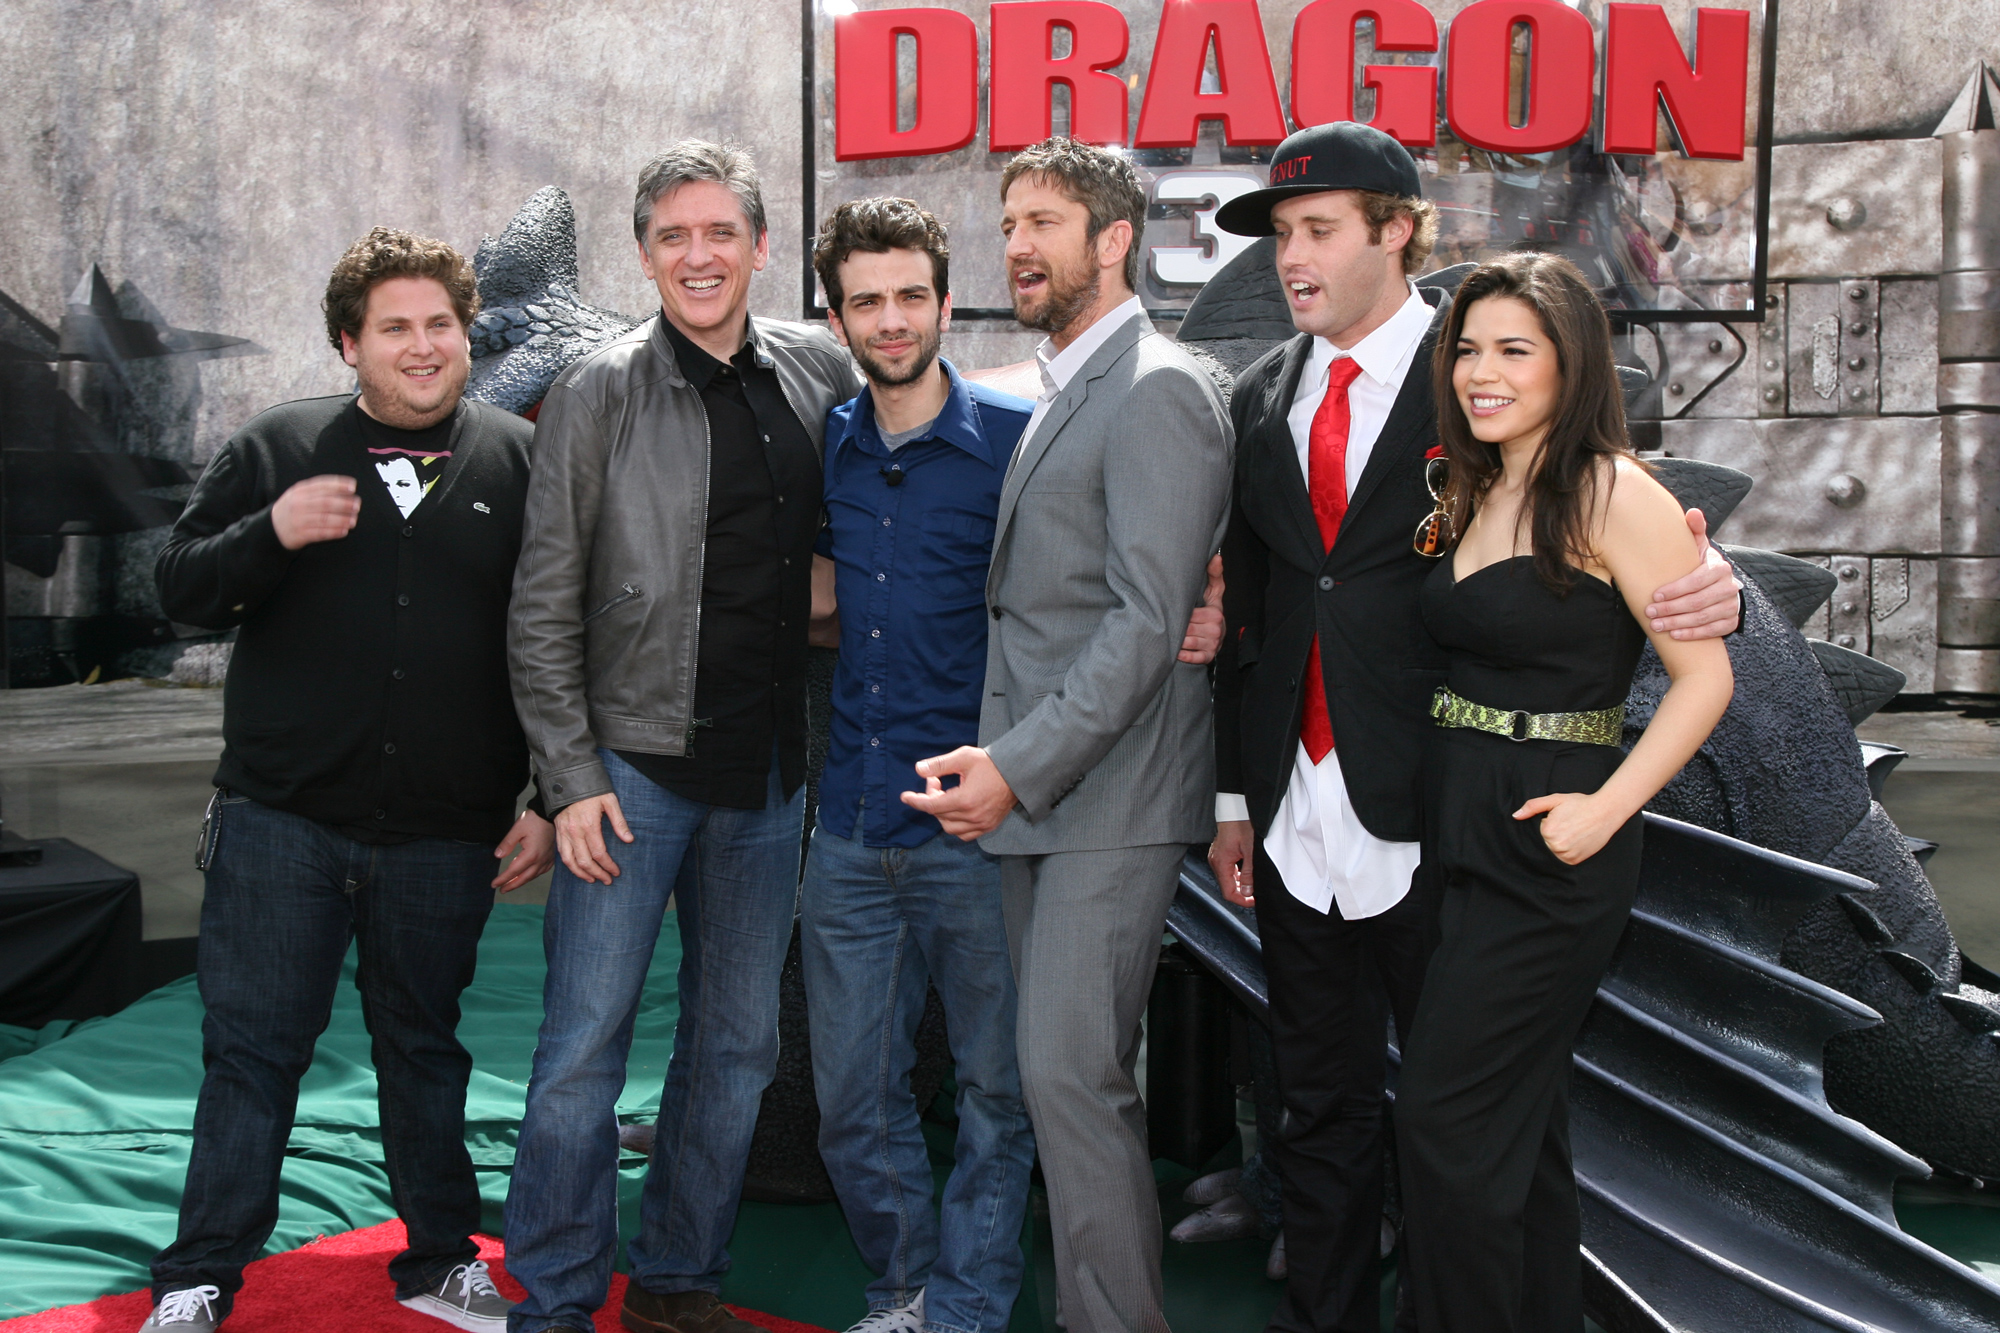 HOW TO TRAIN YOUR DRAGON PREMIERE